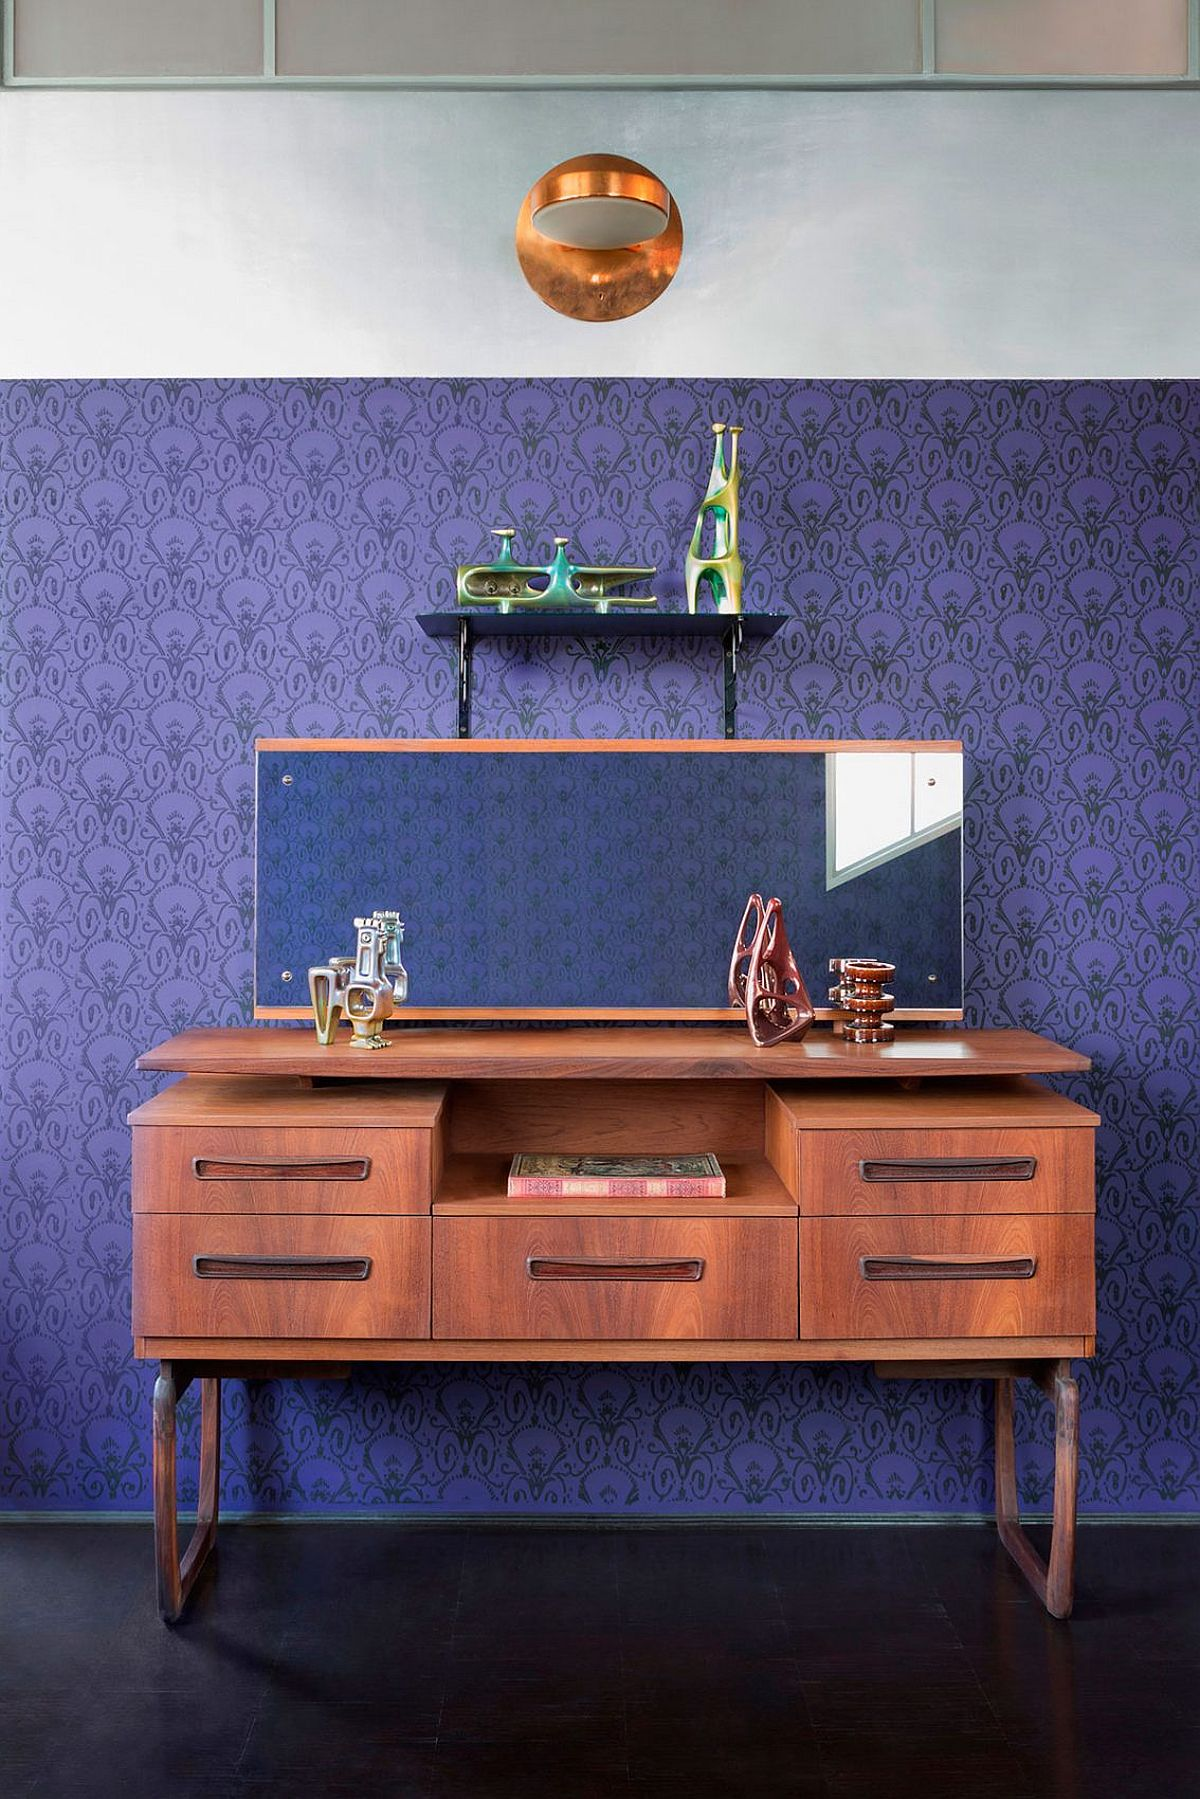 Classic bedroom dressign table and mirror with a bright purple backdrop